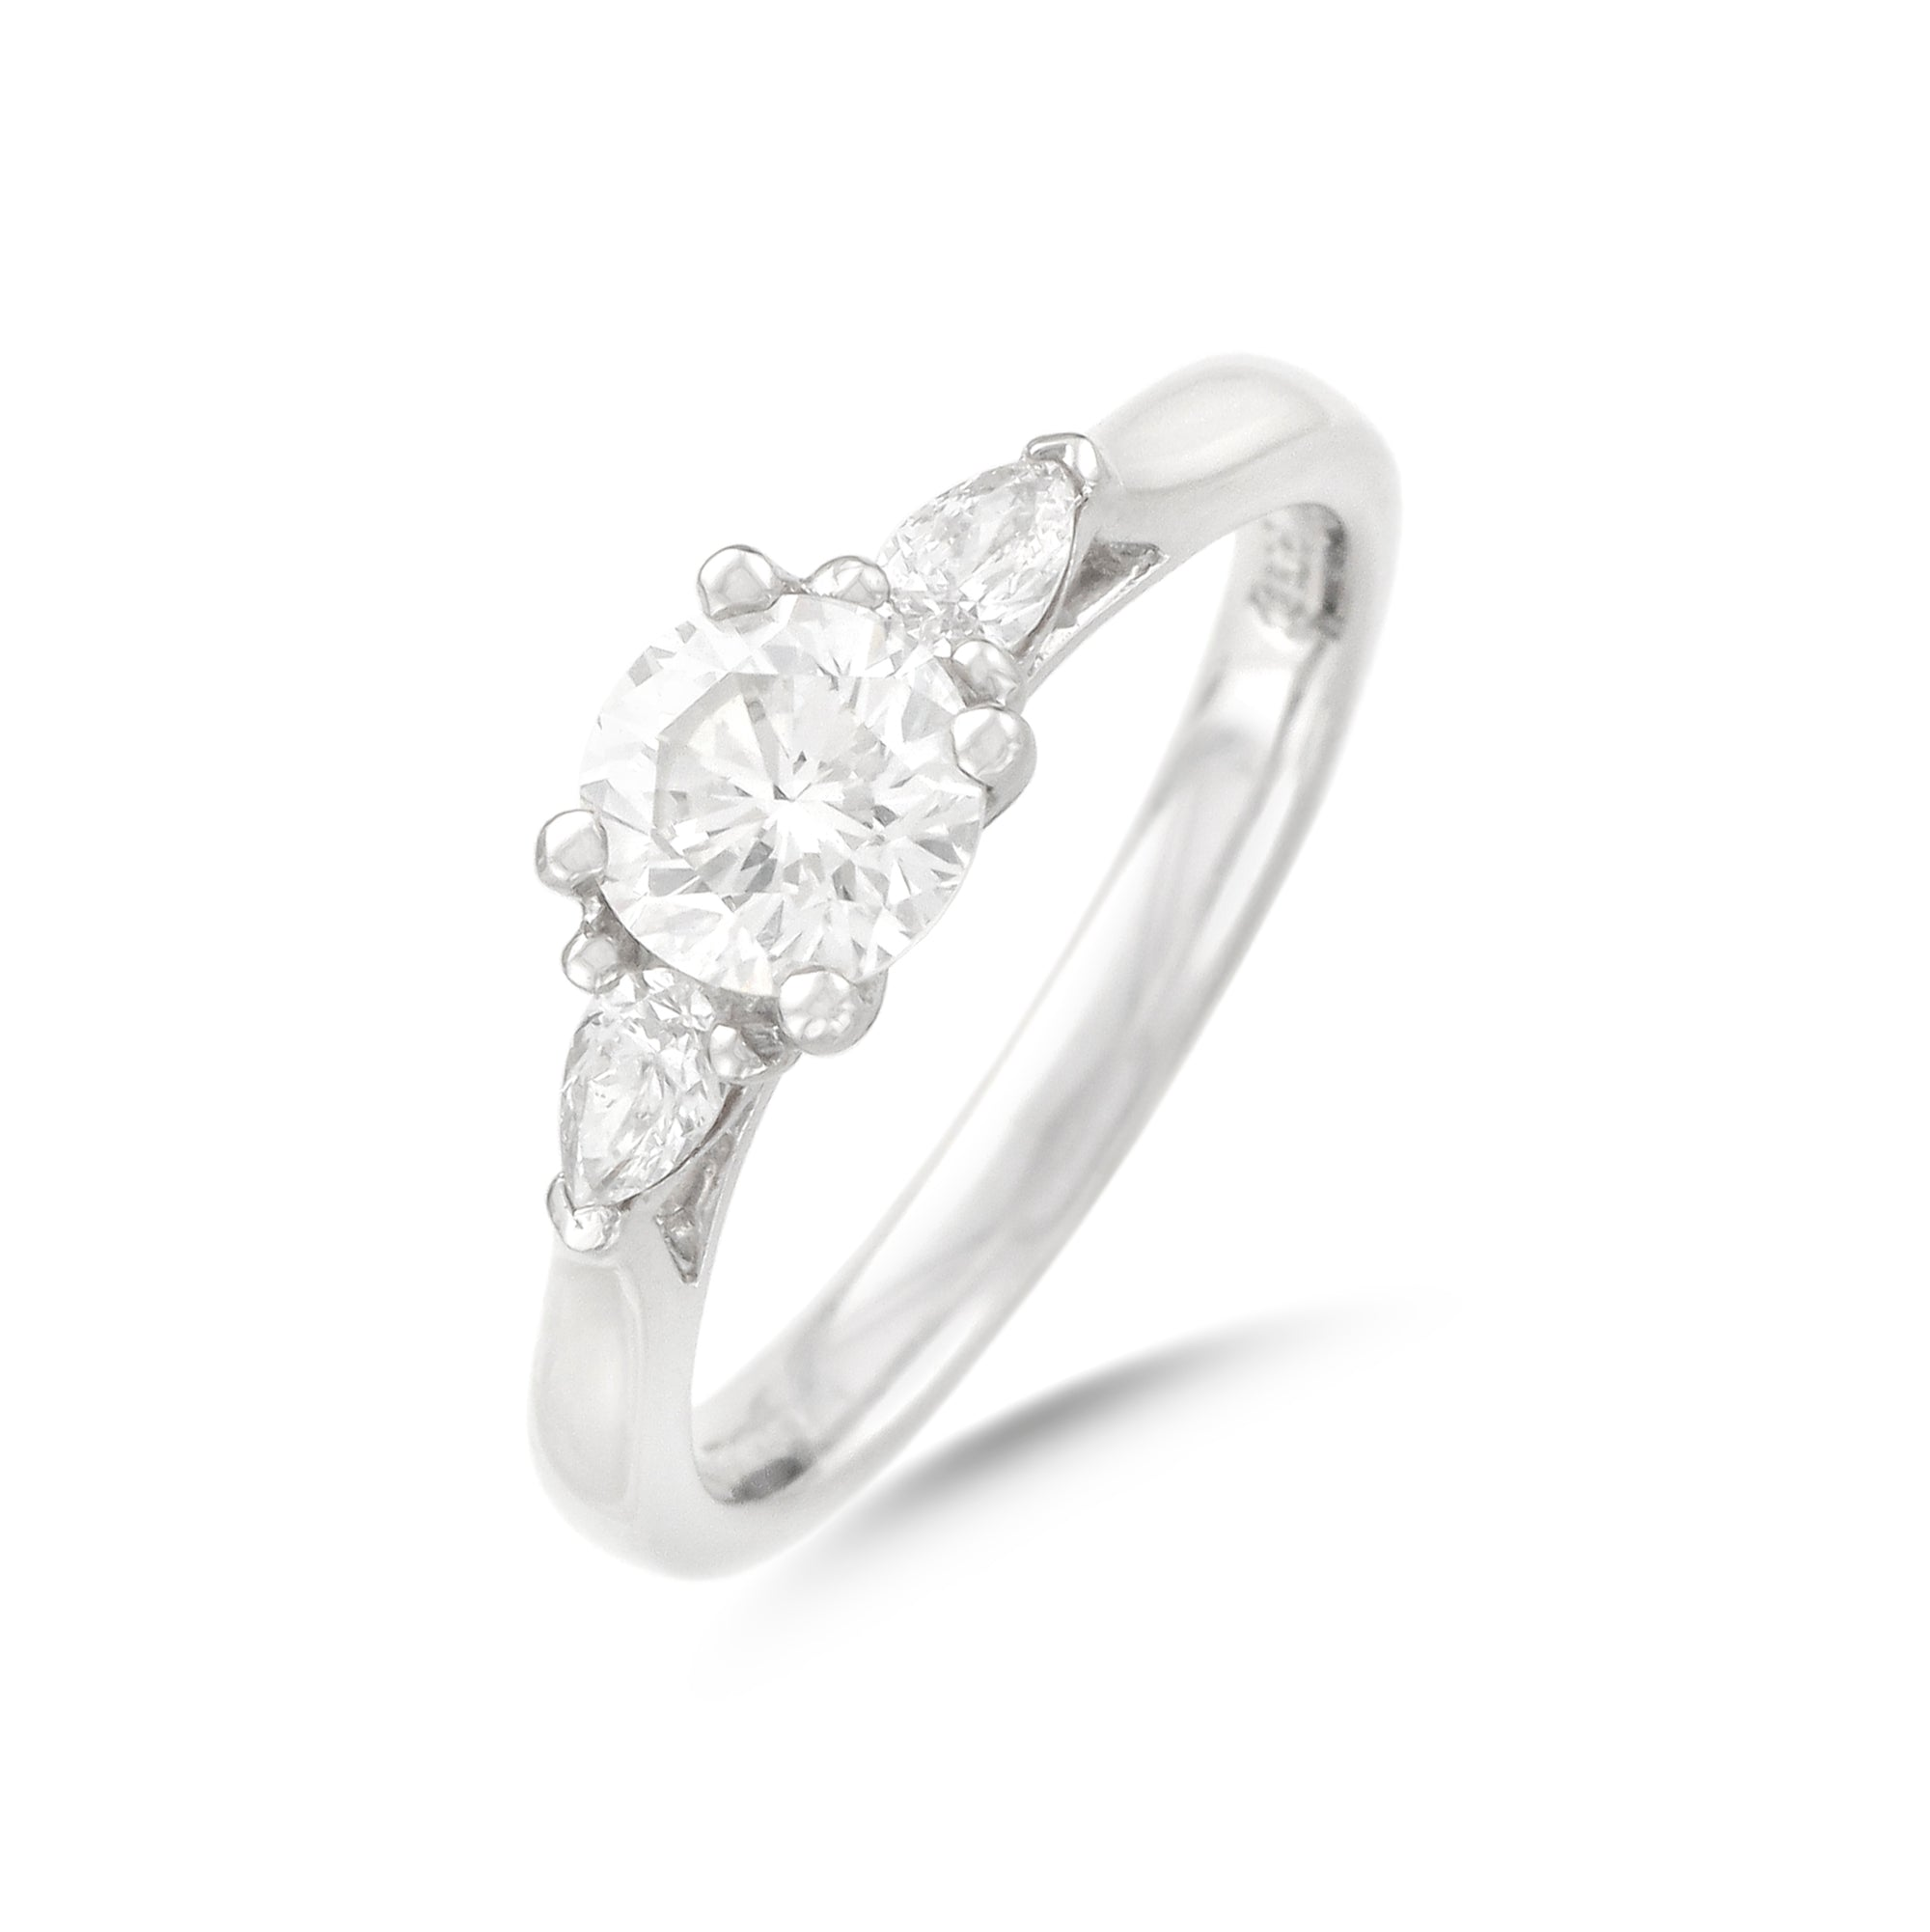 0.65ct Brilliant-Cut Three Stone Diamond Engagement Ring